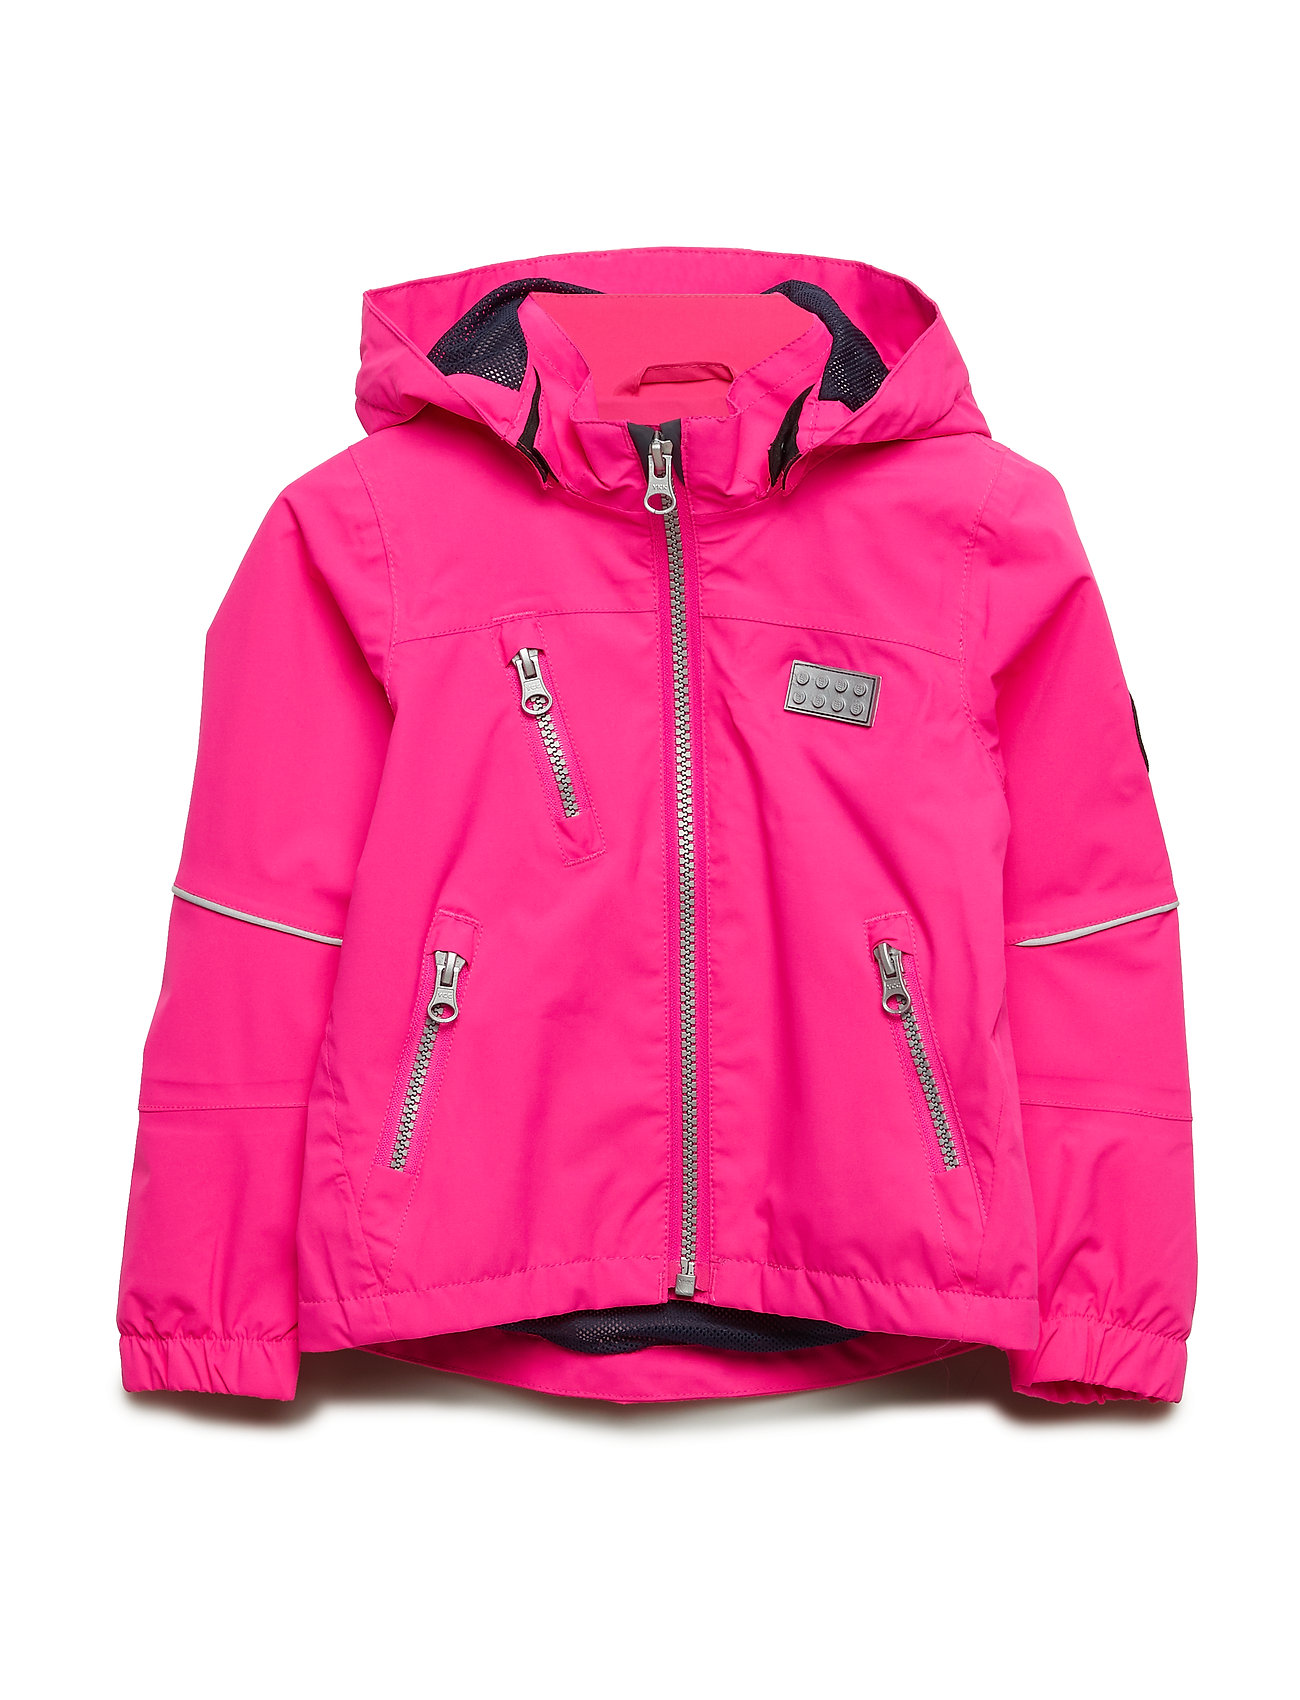 8a26d53c4cbc Lego wear Josefine 205 - Jacket (Dark Pink)